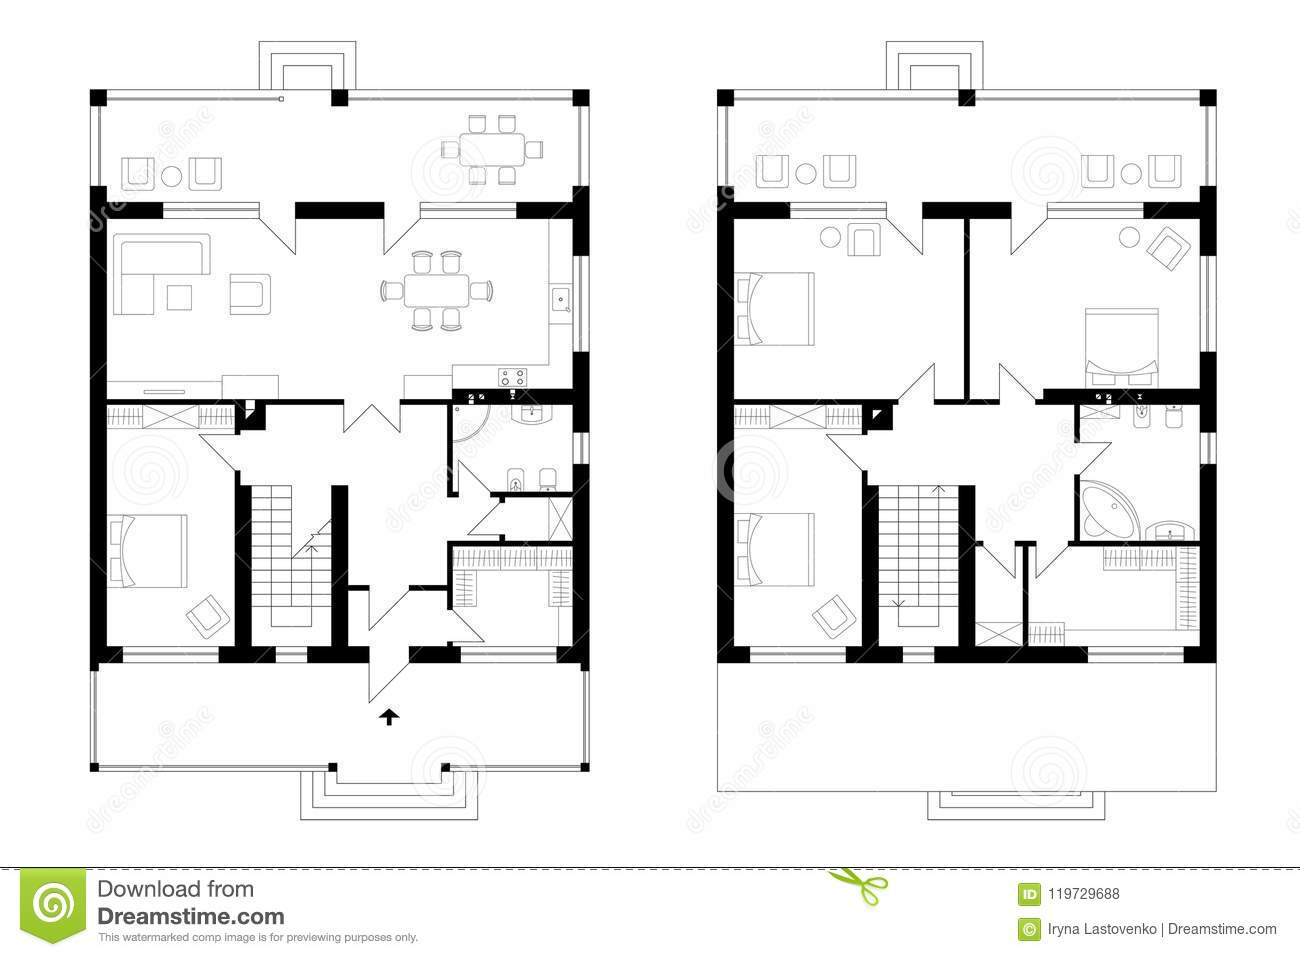 Architectural plan of a two storey manor house with a terrace the layout of an individual two storey house with four bedrooms kitchen living room